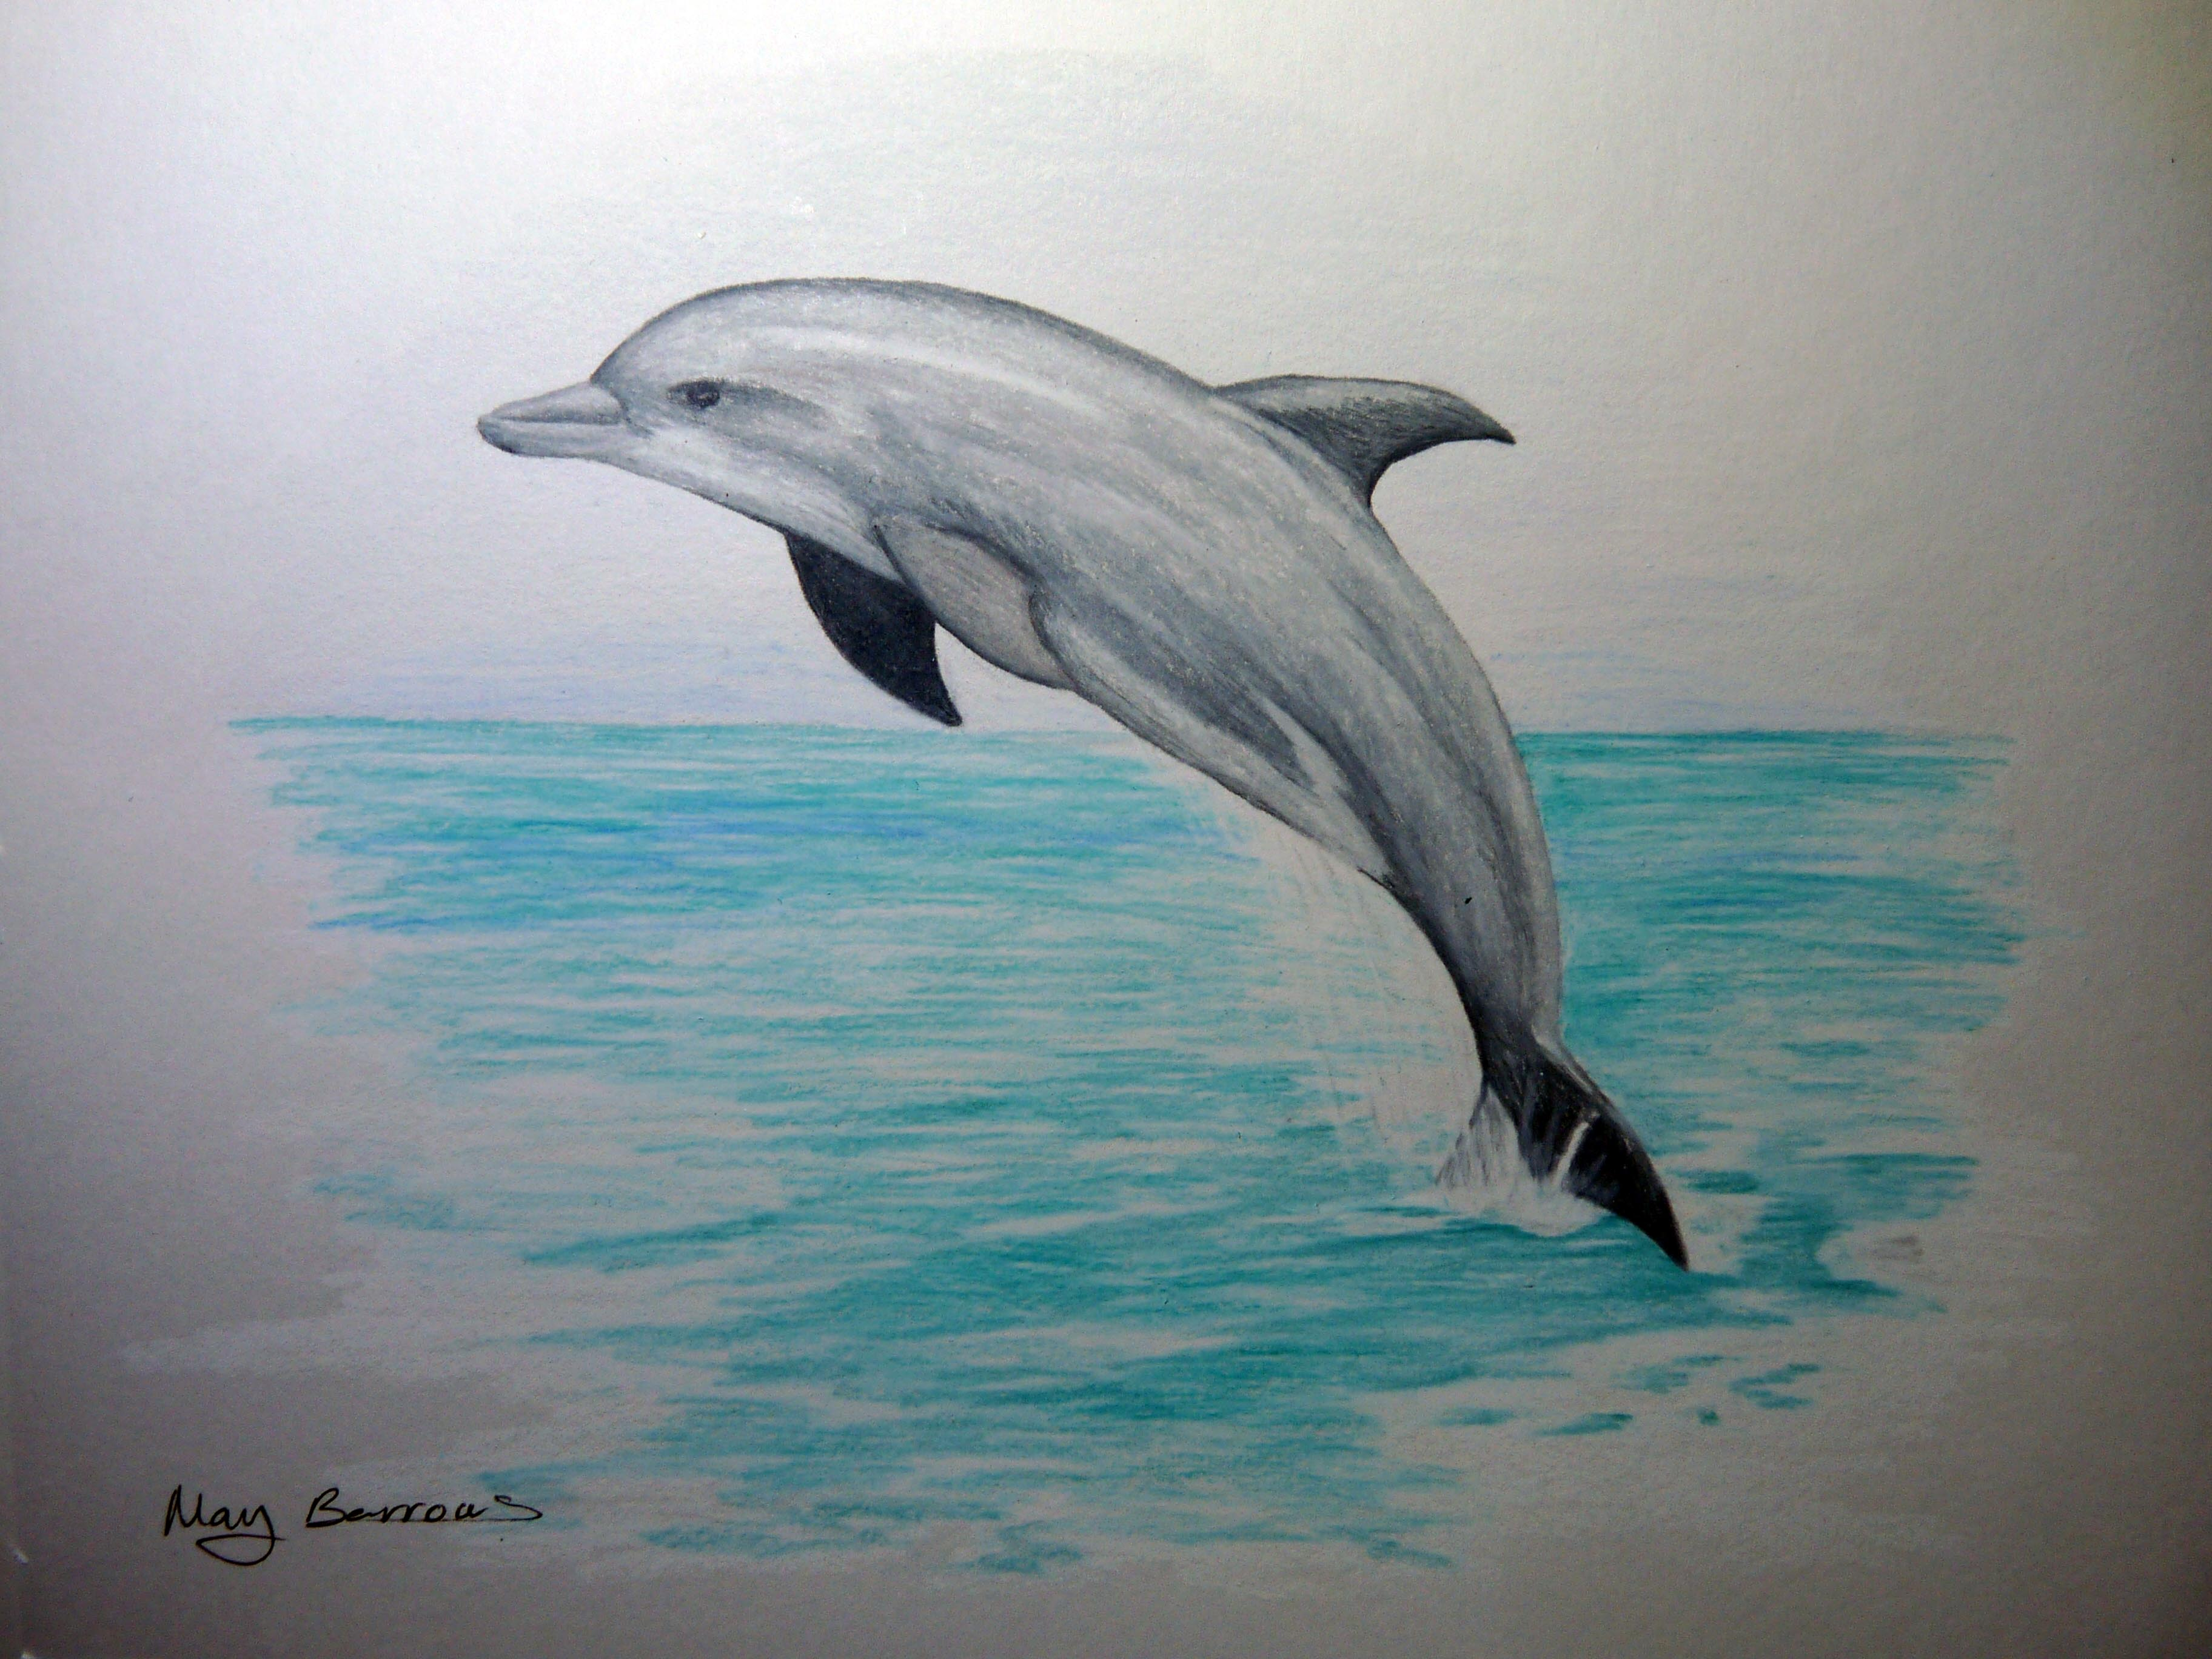 3648x2736 Largest What Color Is A Dolphin Pencil Drawings Of Dolphins 1000